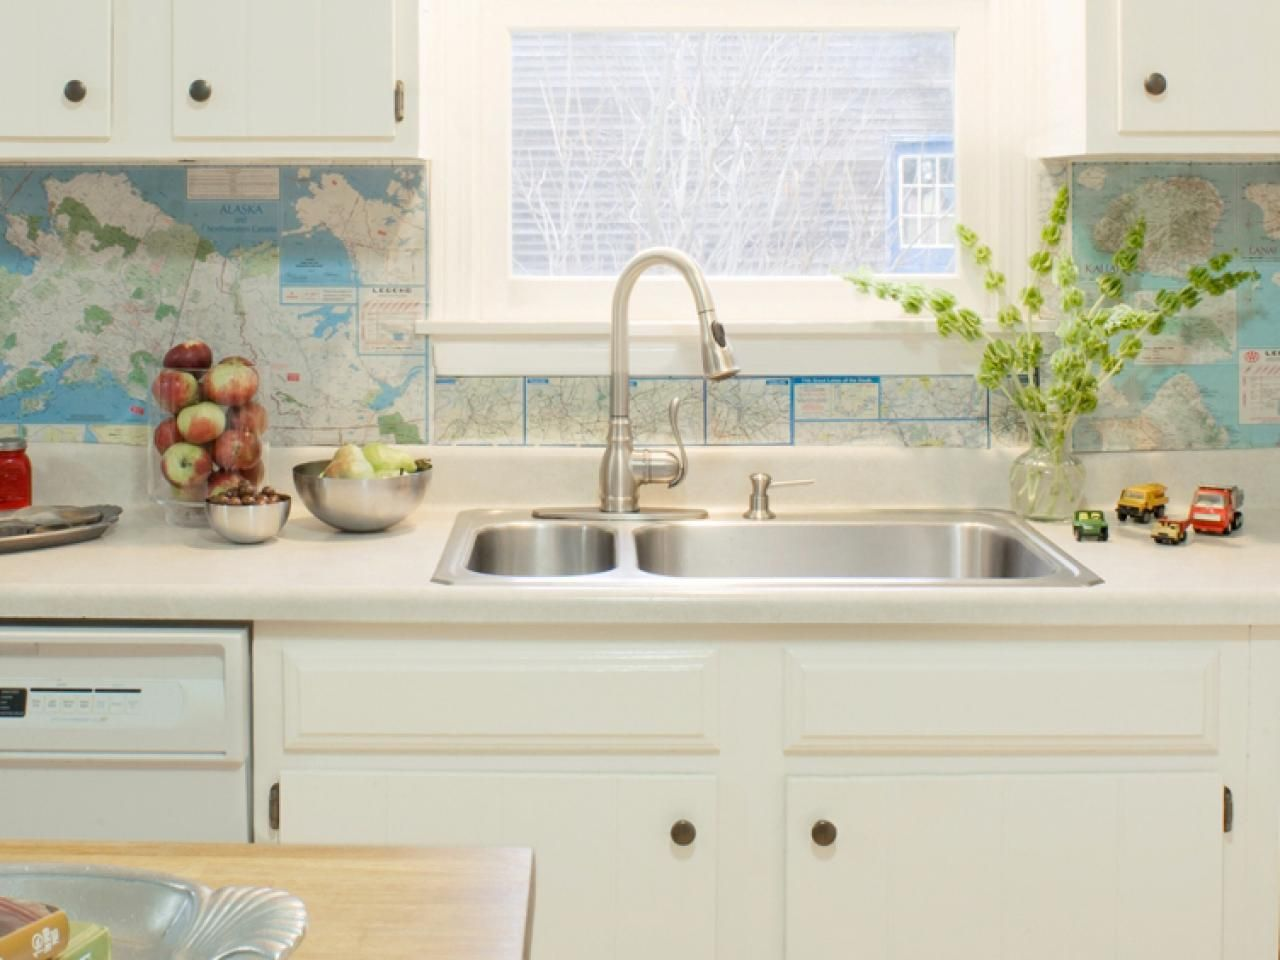 Backsplash Behind Sink Top 20 Diy Kitchen Backsplash Ideas